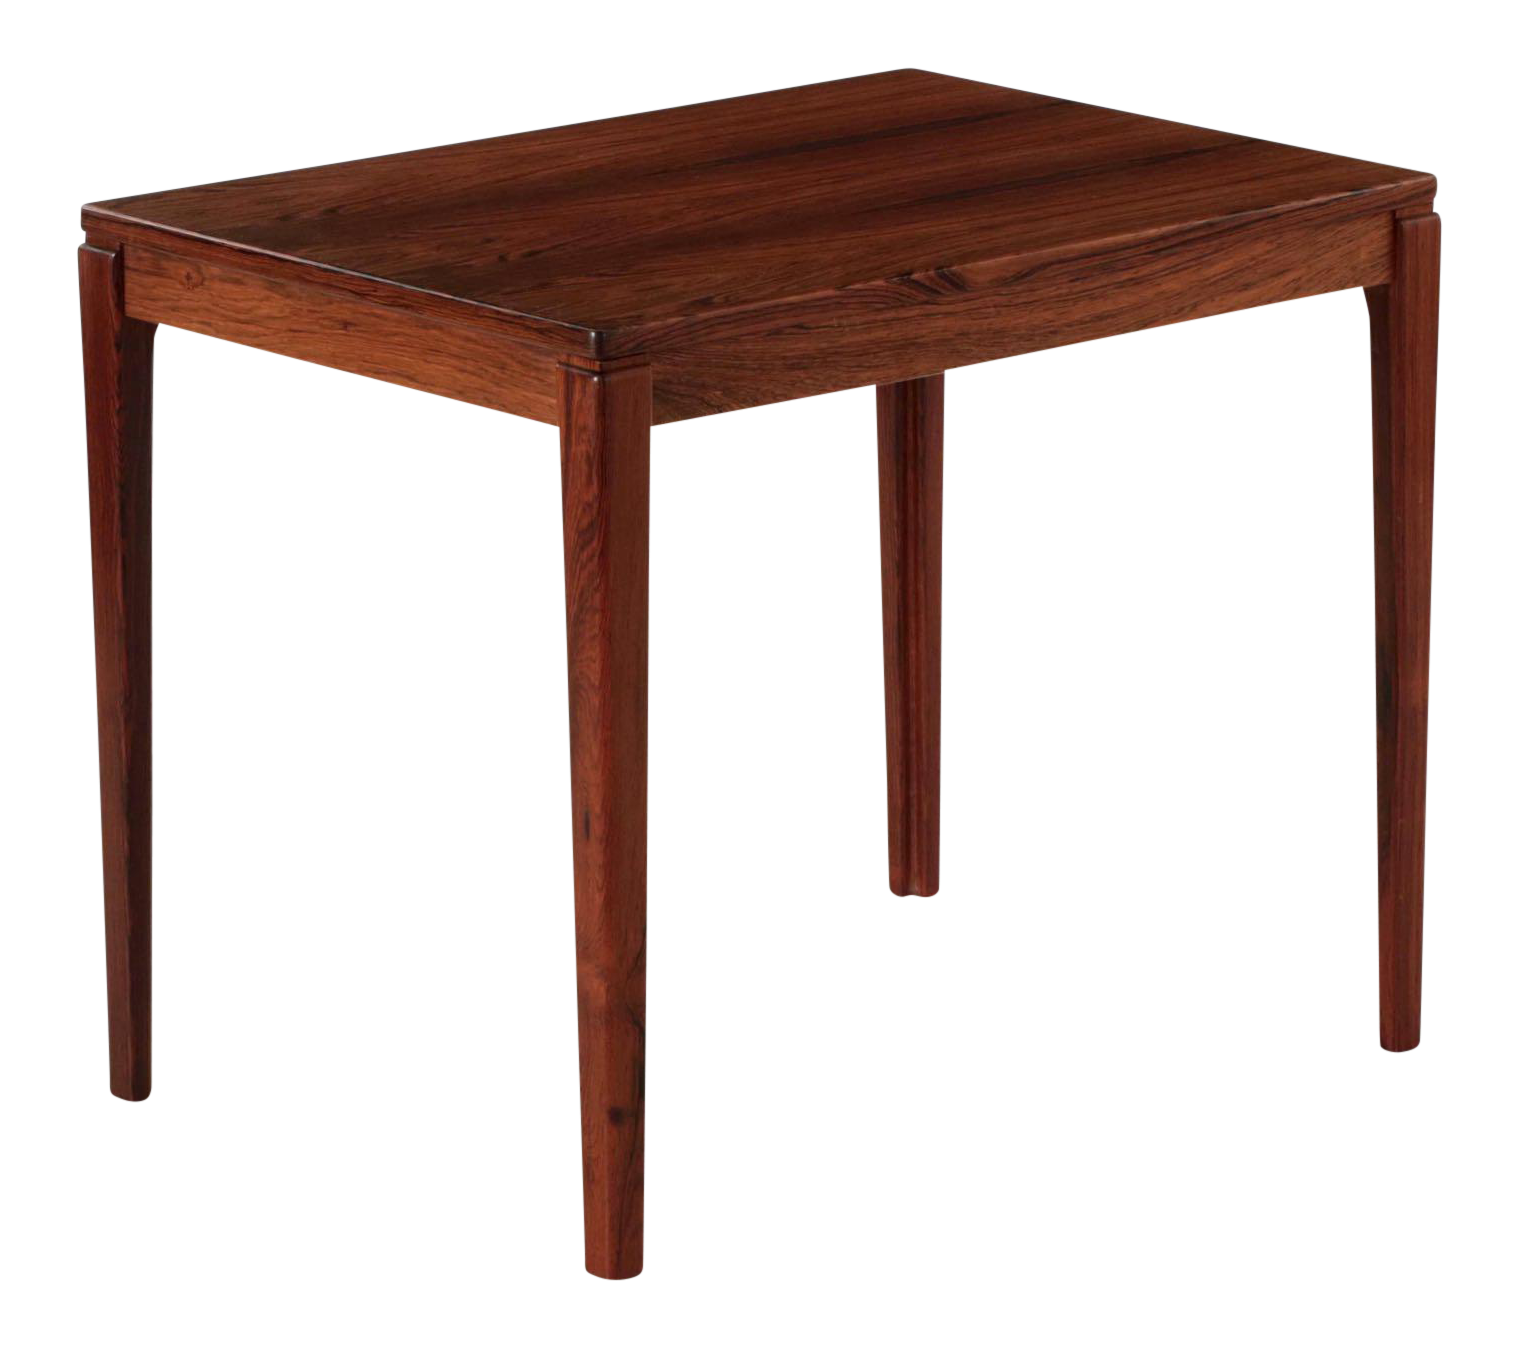 Swedish Mid Century Modern Rosewood Side Table By Ulferts Møbler For Sale